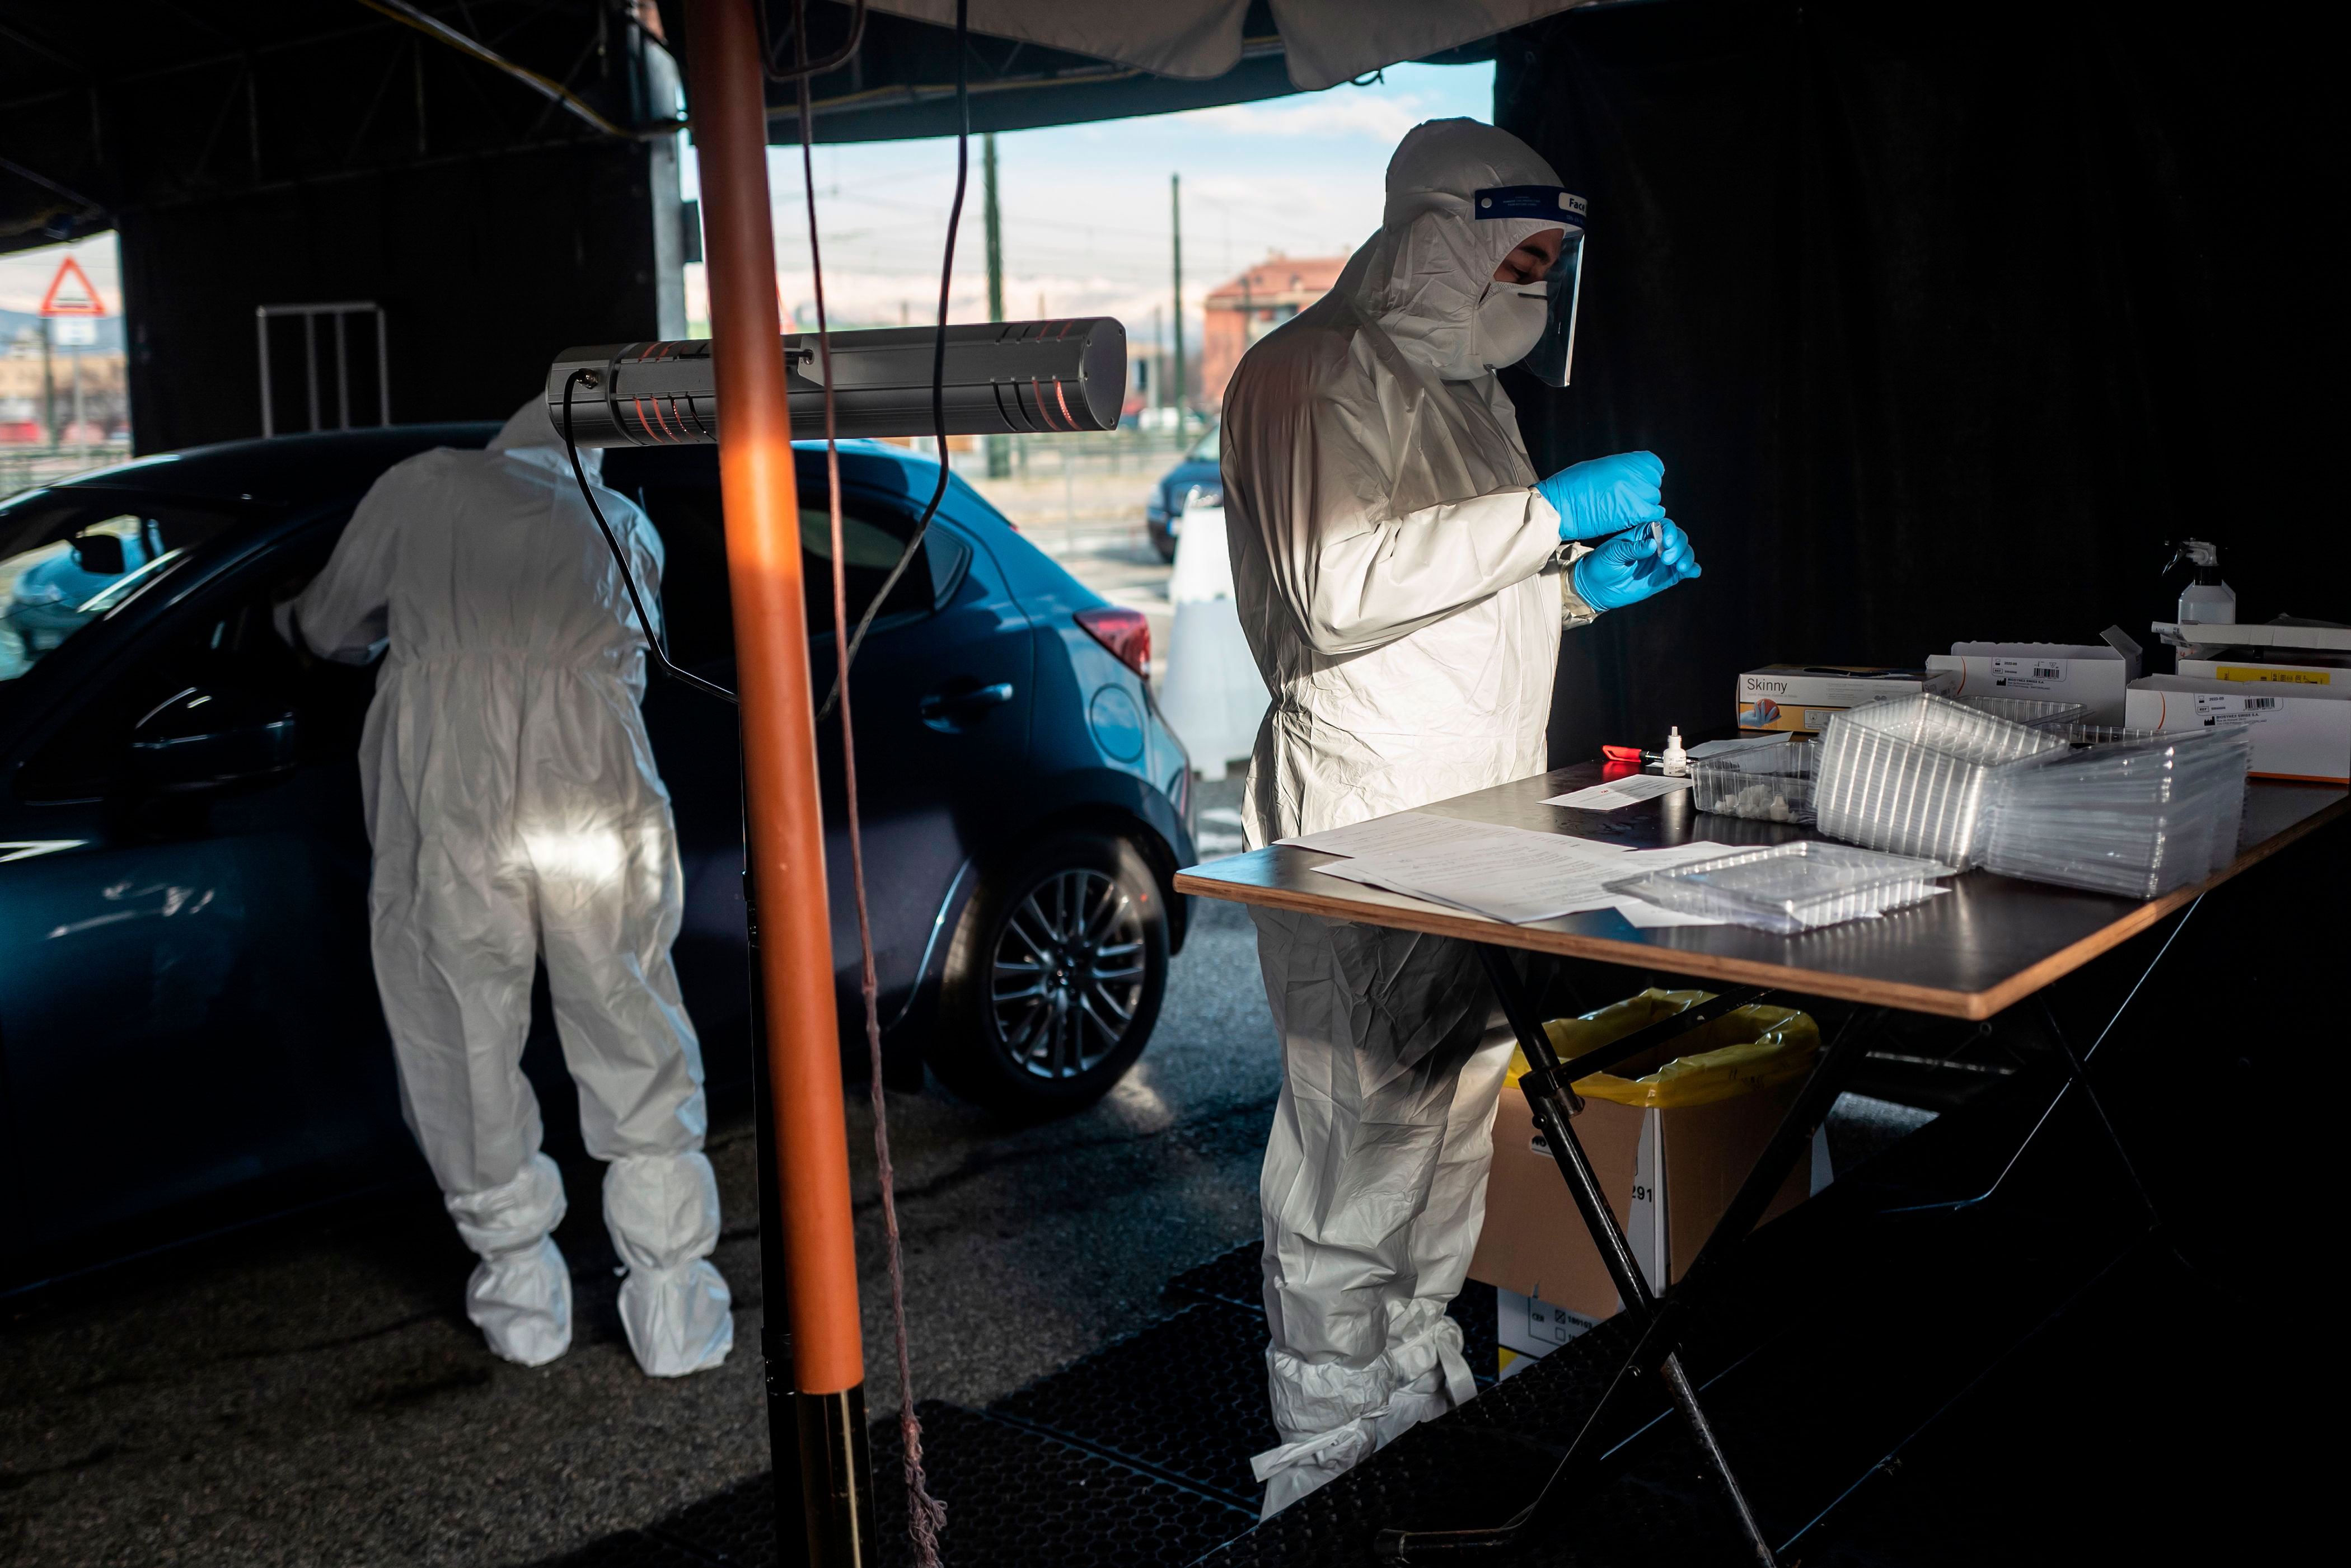 Military medical workers collect swab samples at a drive-thru Covid-19 testing center in Turin, Italy, on January 12.